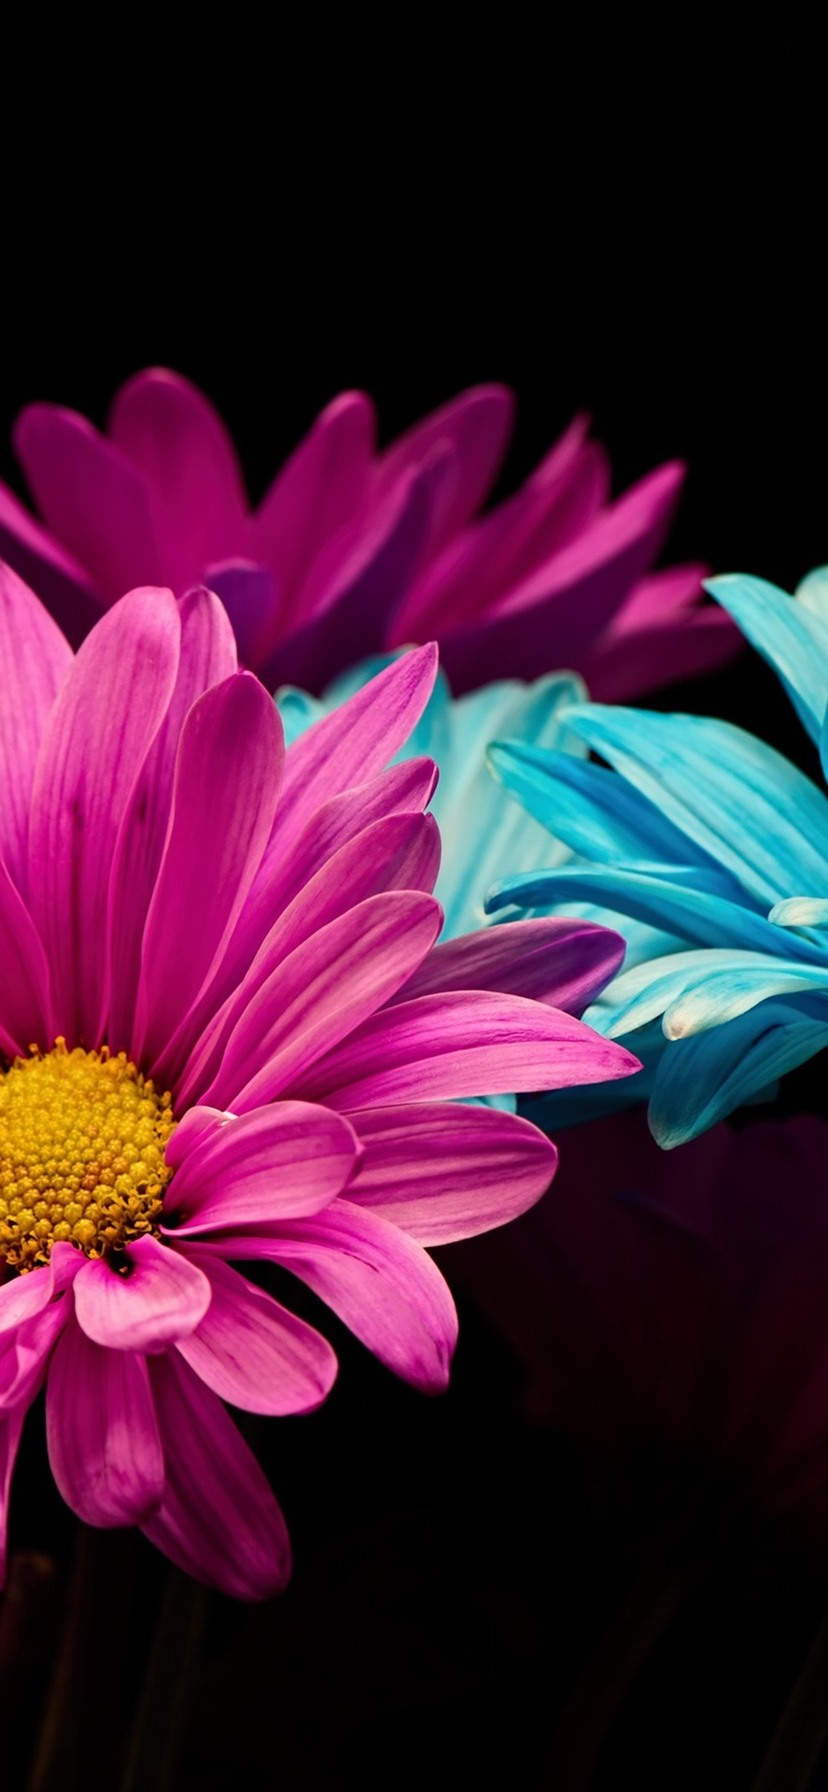 Wallpaper Pink And Blue Petals Daisy Black Background